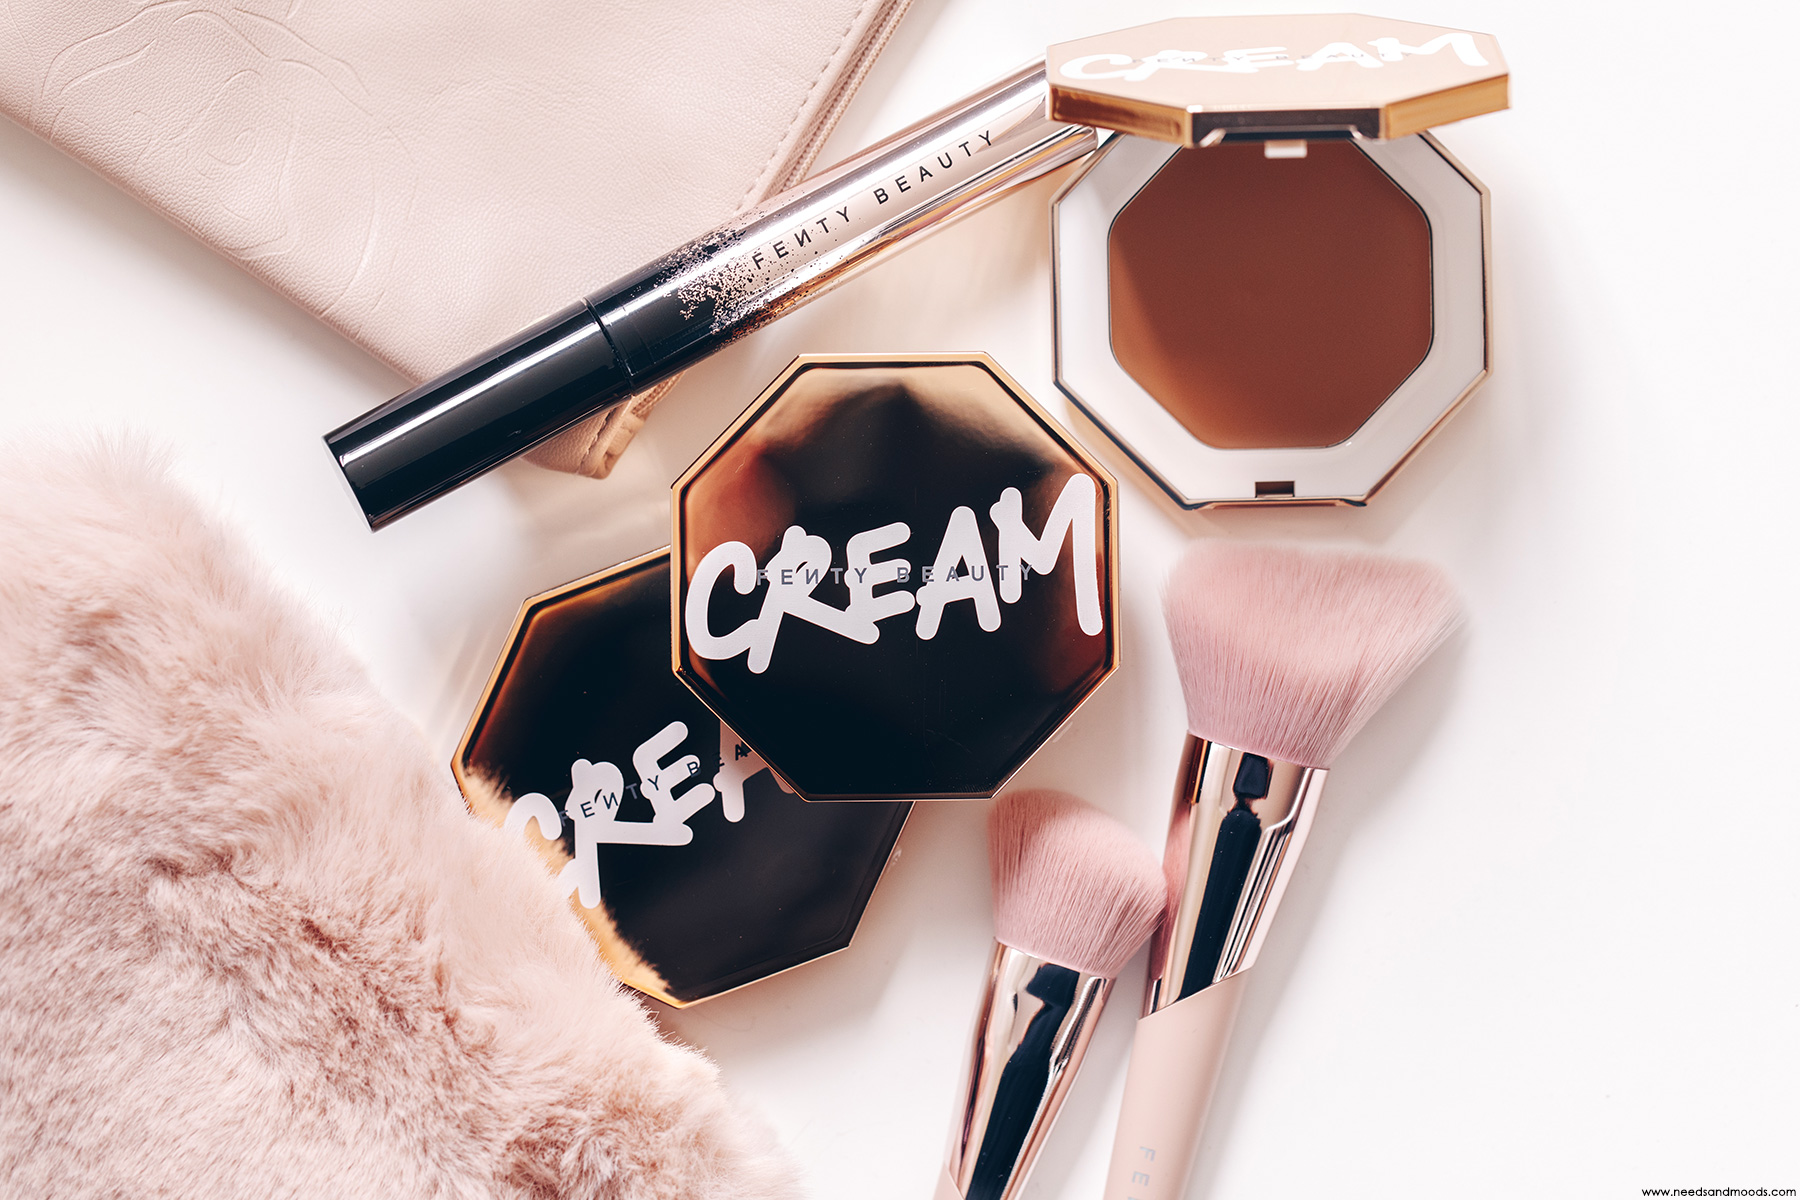 fenty beauty cheeks out freestyle bronzer creme